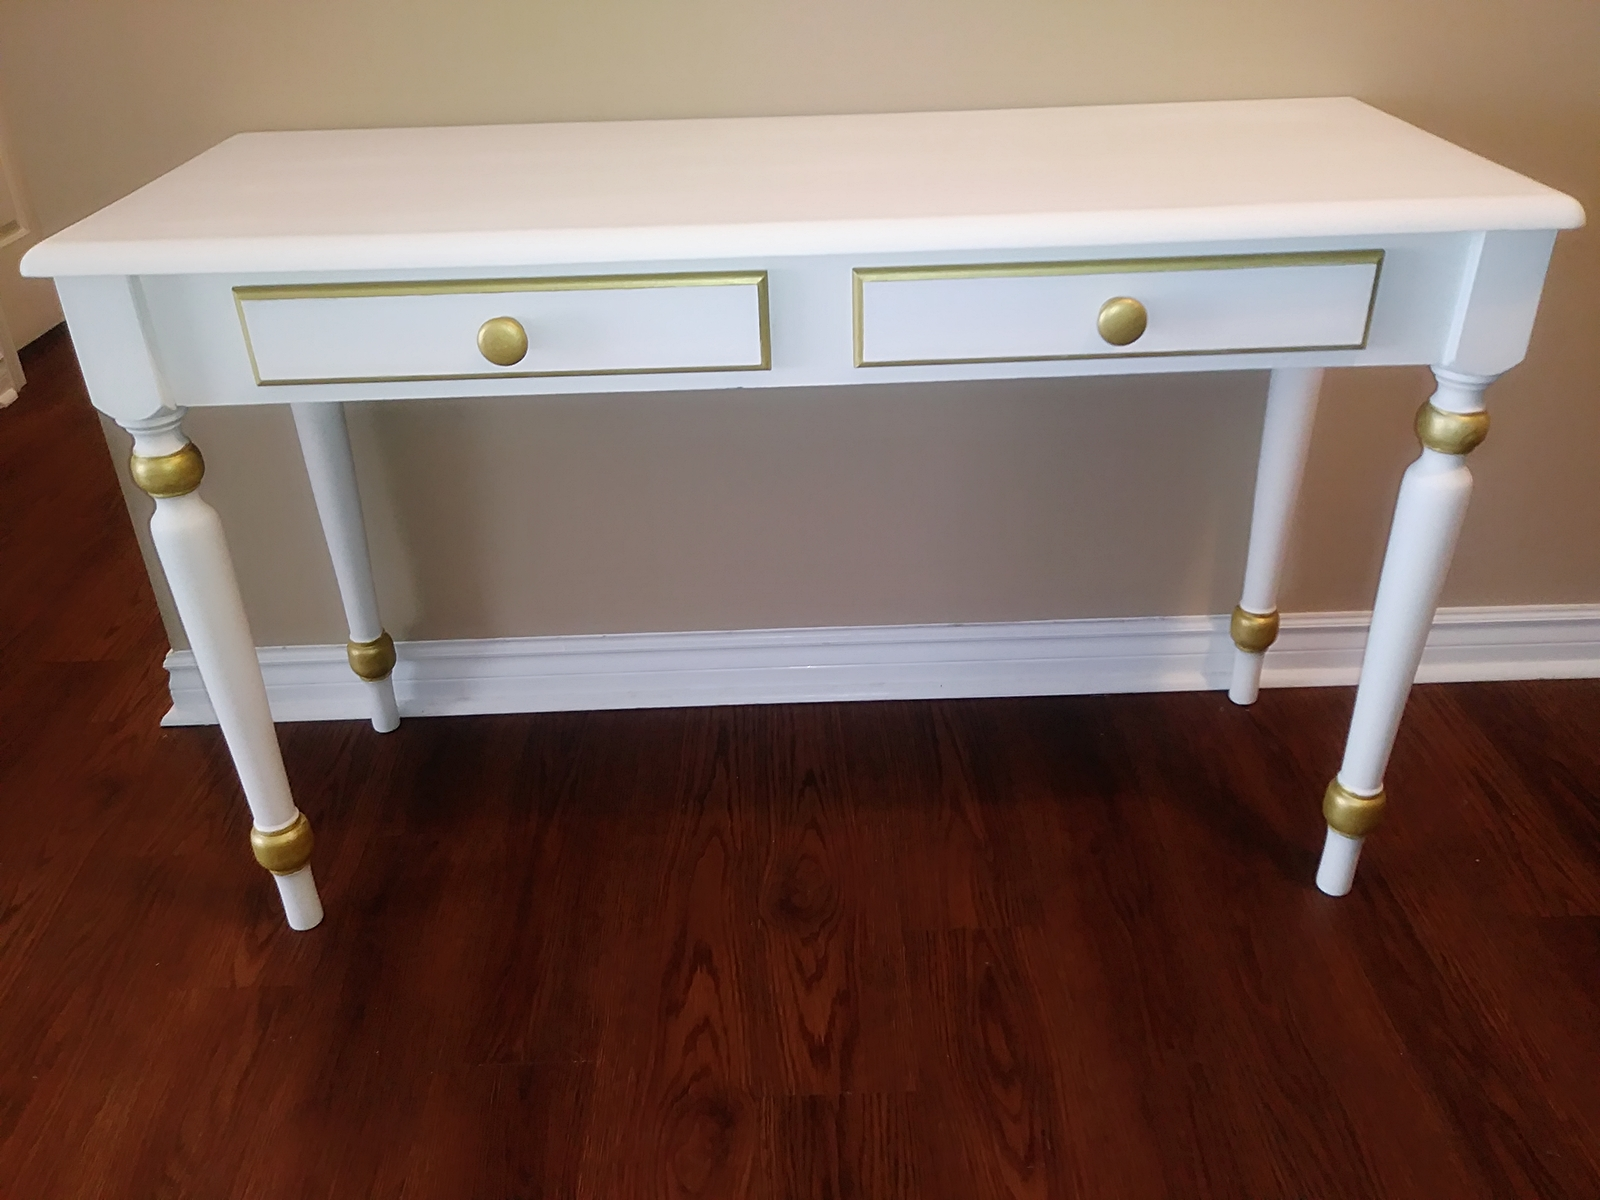 Two Drawer Table - $60.00